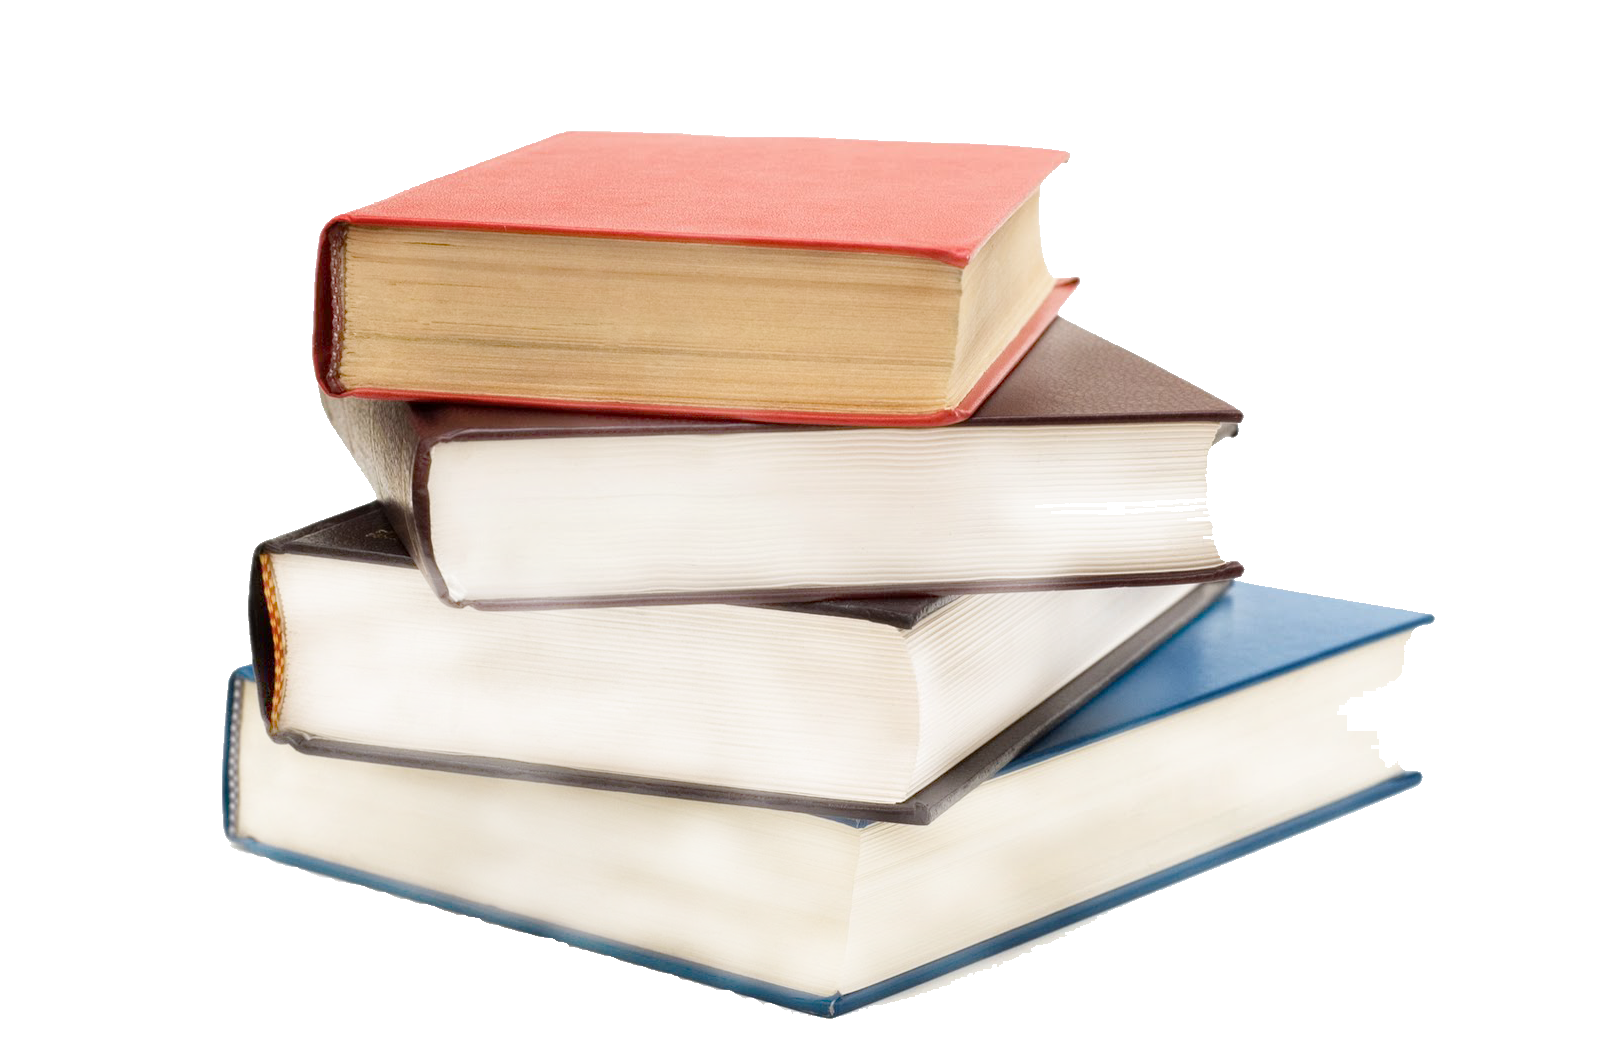 Stack of books png. Transparent images all image